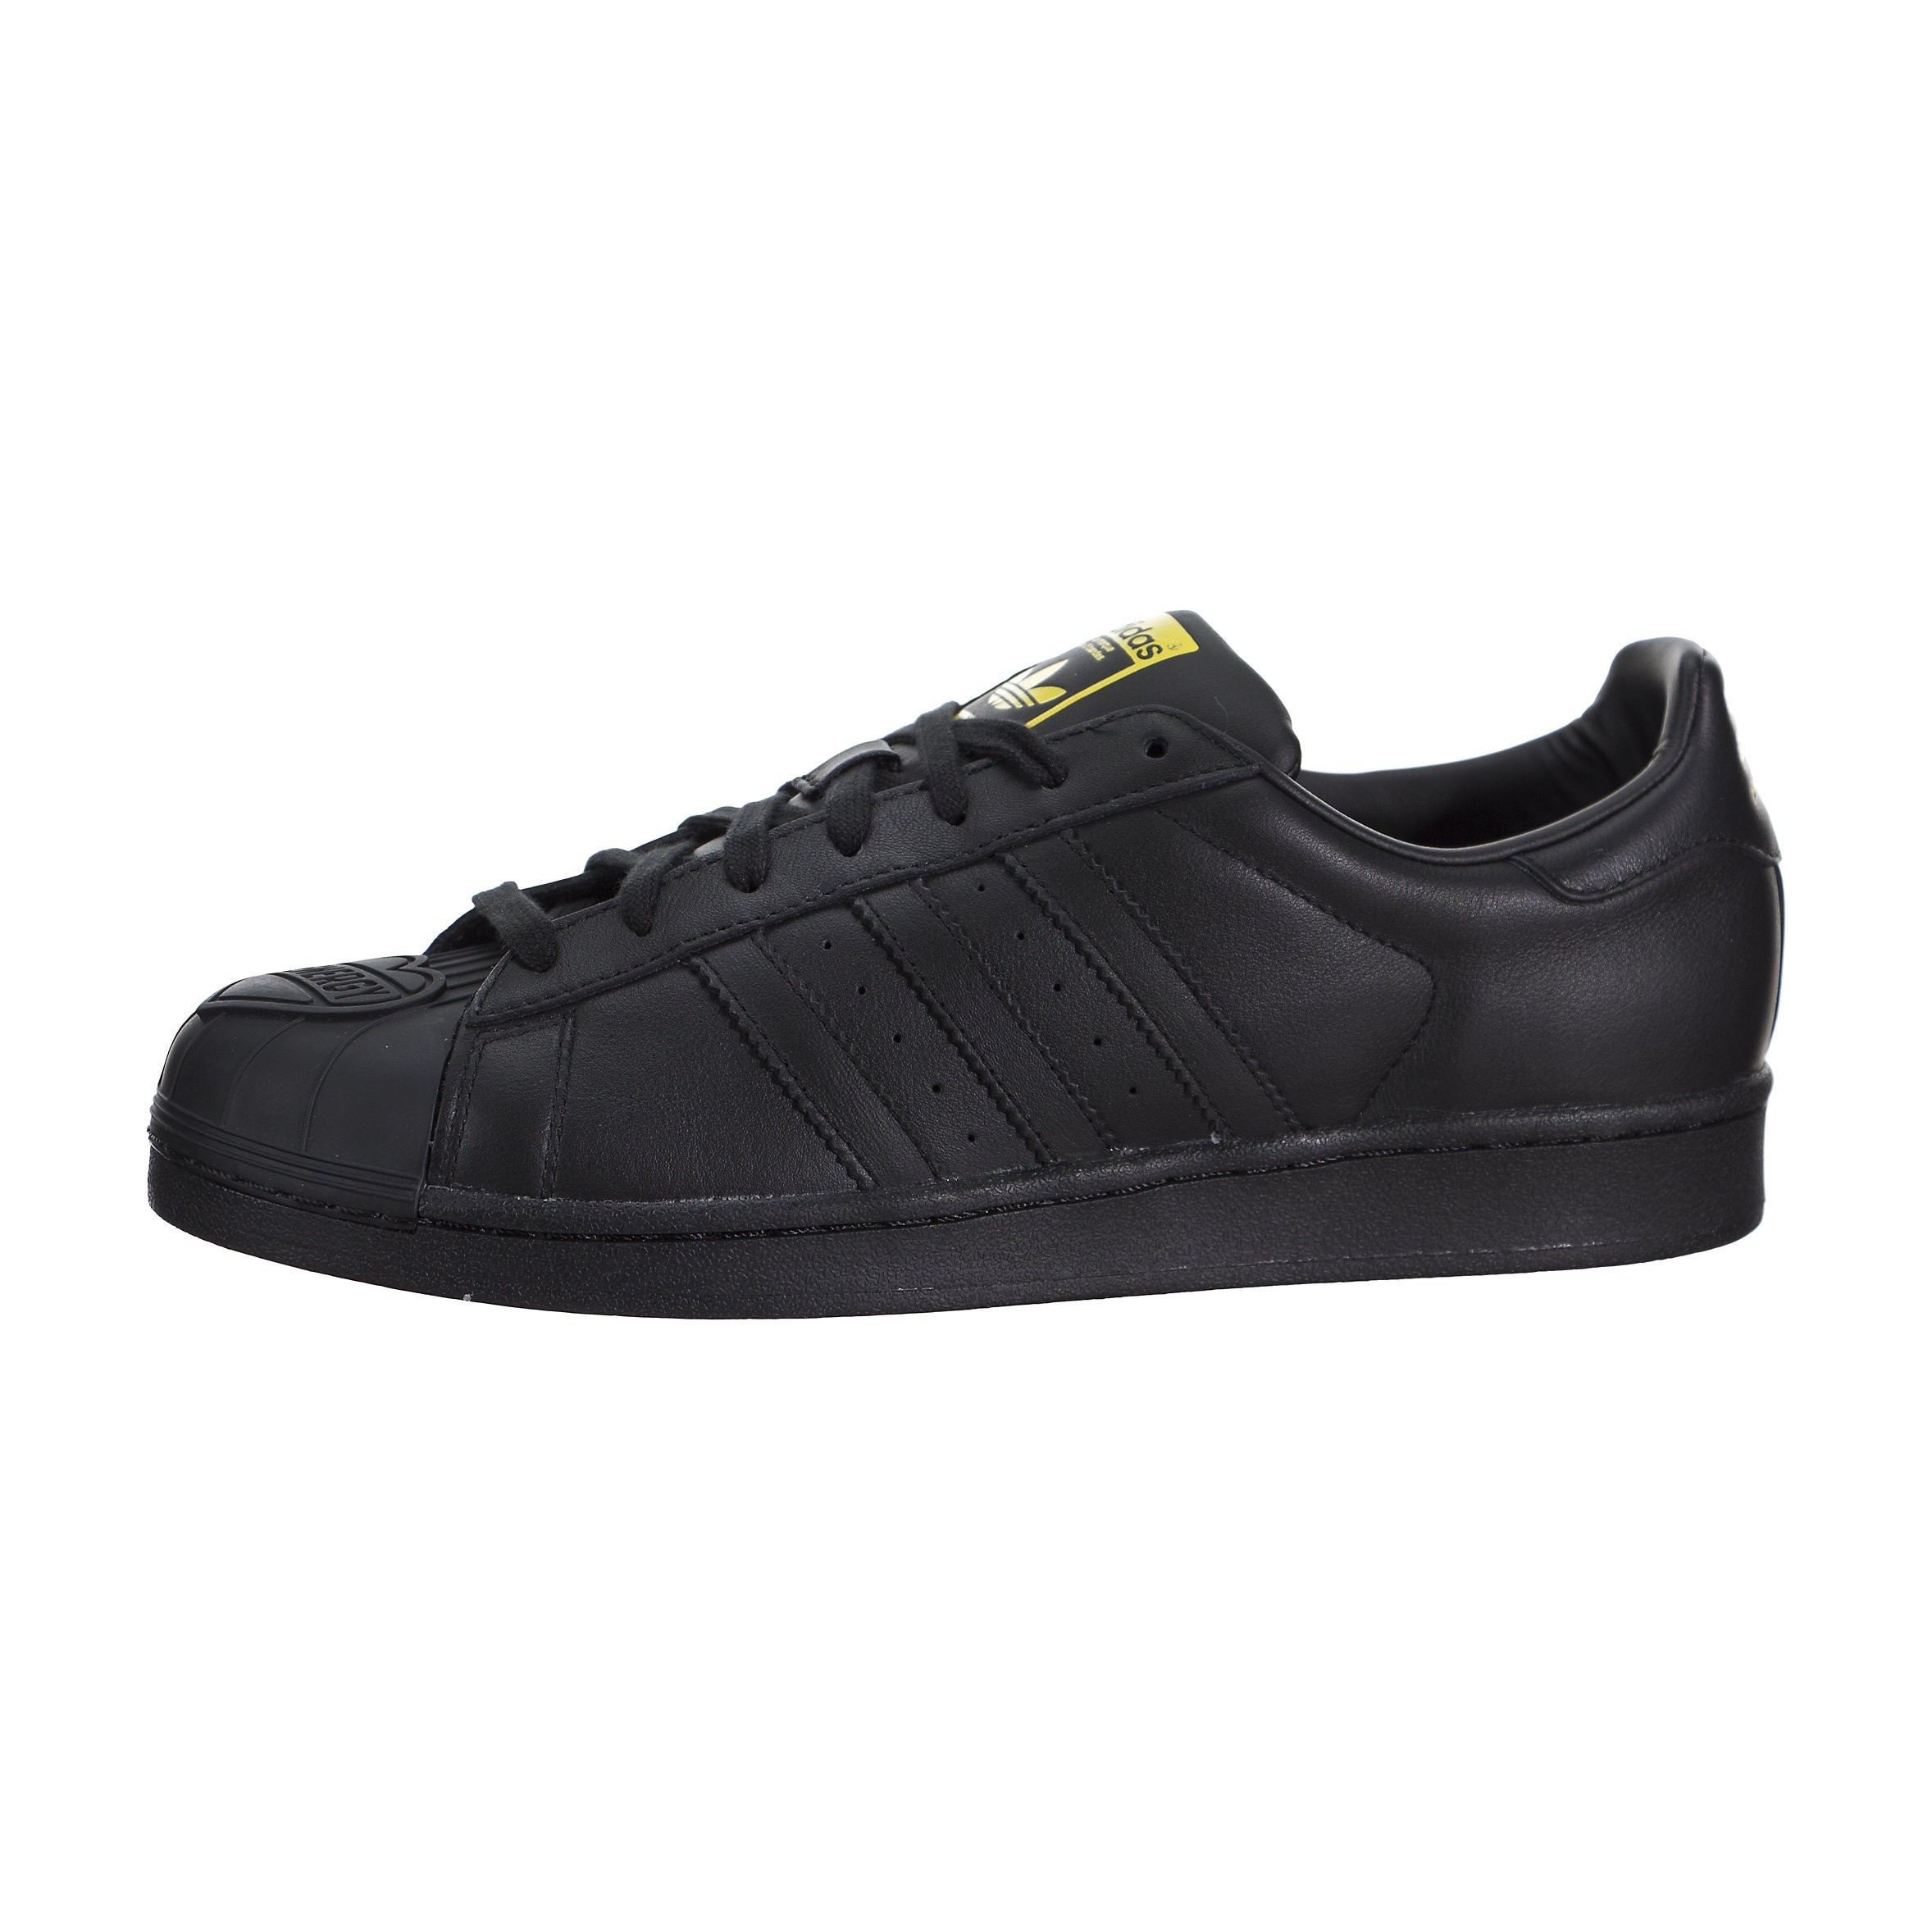 Adidas Hombre Originals Superstar Pharrell Williams Supershell Negras s83345